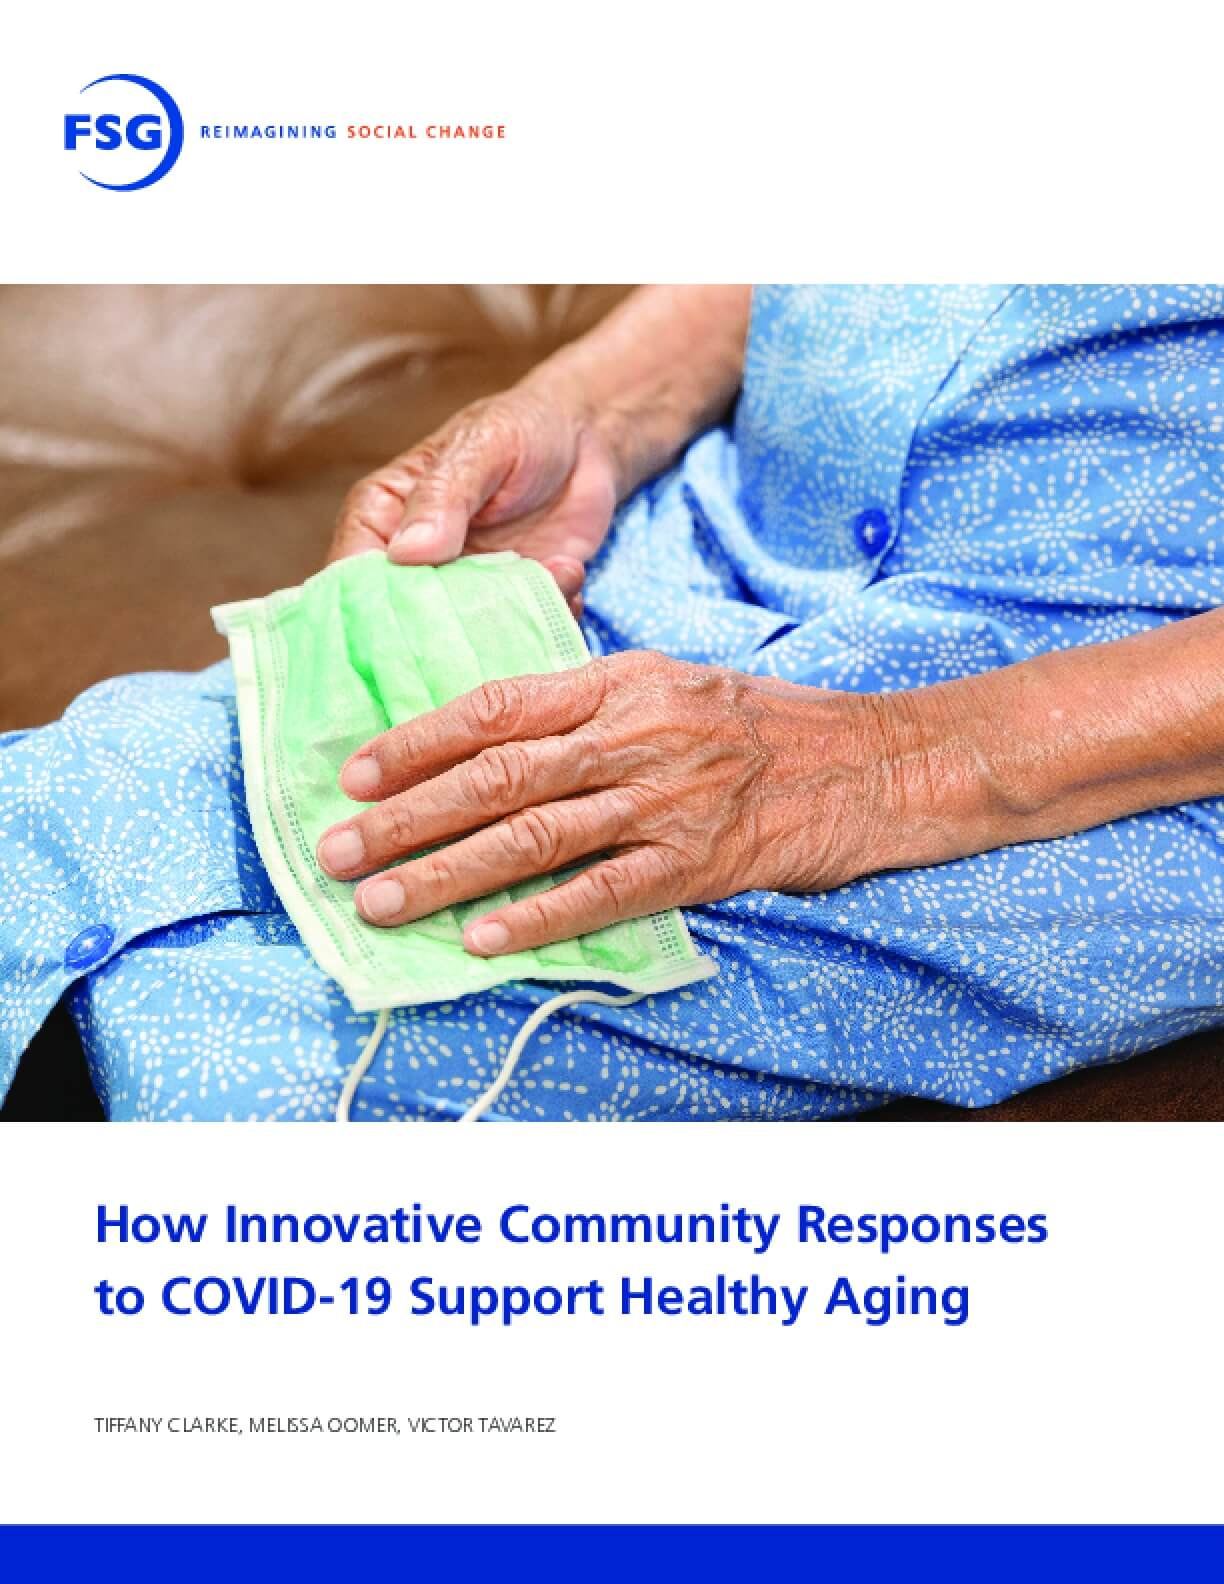 How Innovative Community Responses to COVID-19 Support Healthy Aging